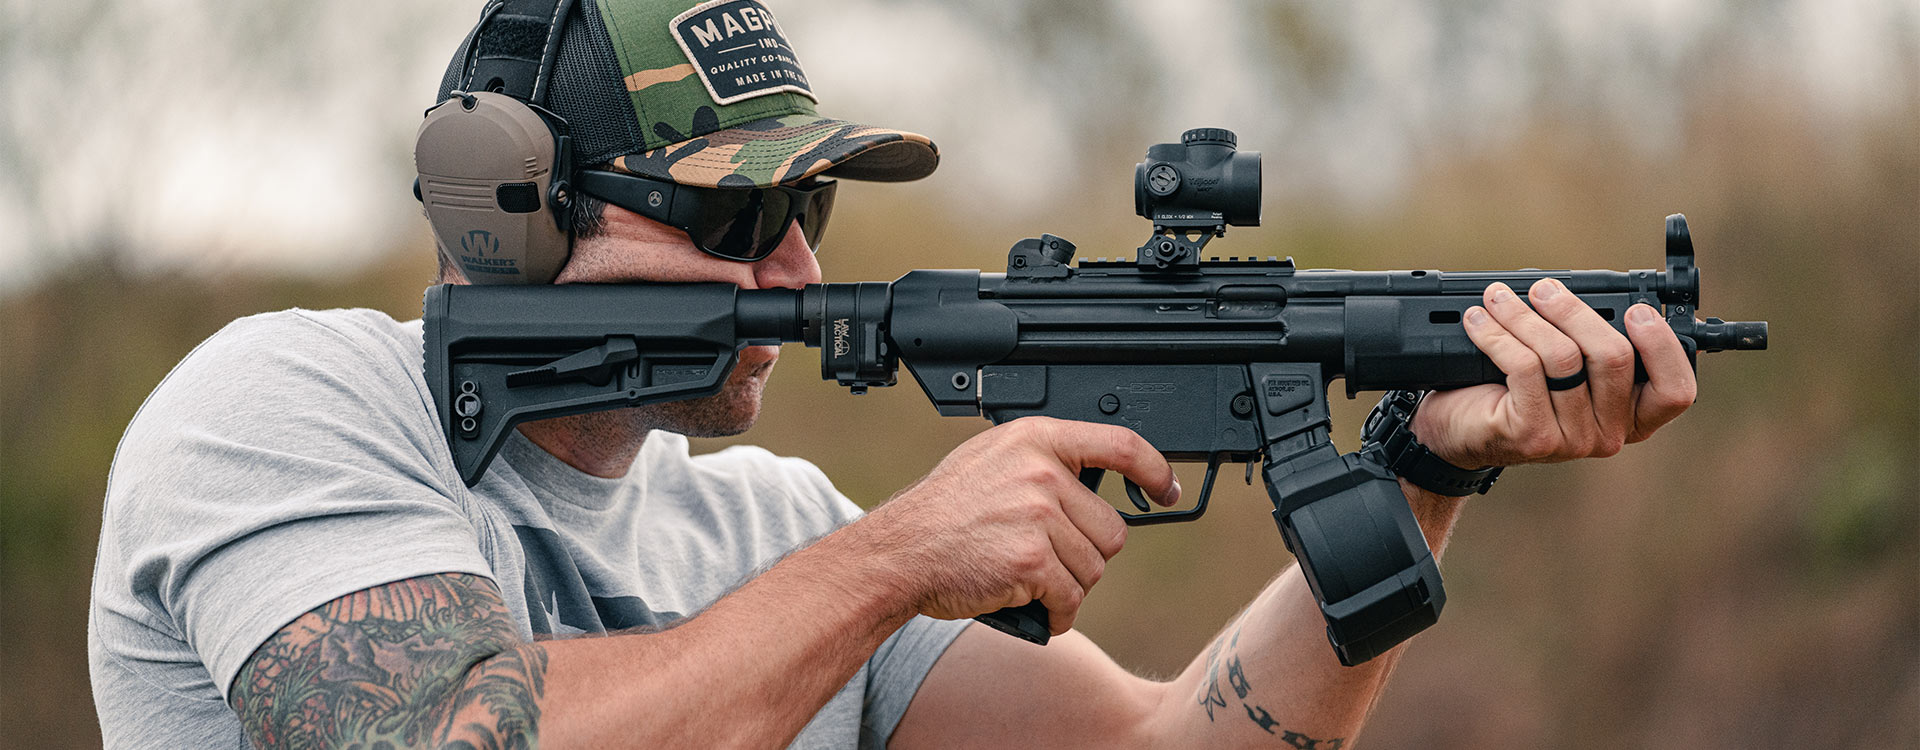 Magpul Rift Eyewear - Black Frame, Gray Lens on a shooter firing MP5 with Magpul D-50 Drum and MOE SL-K Stock